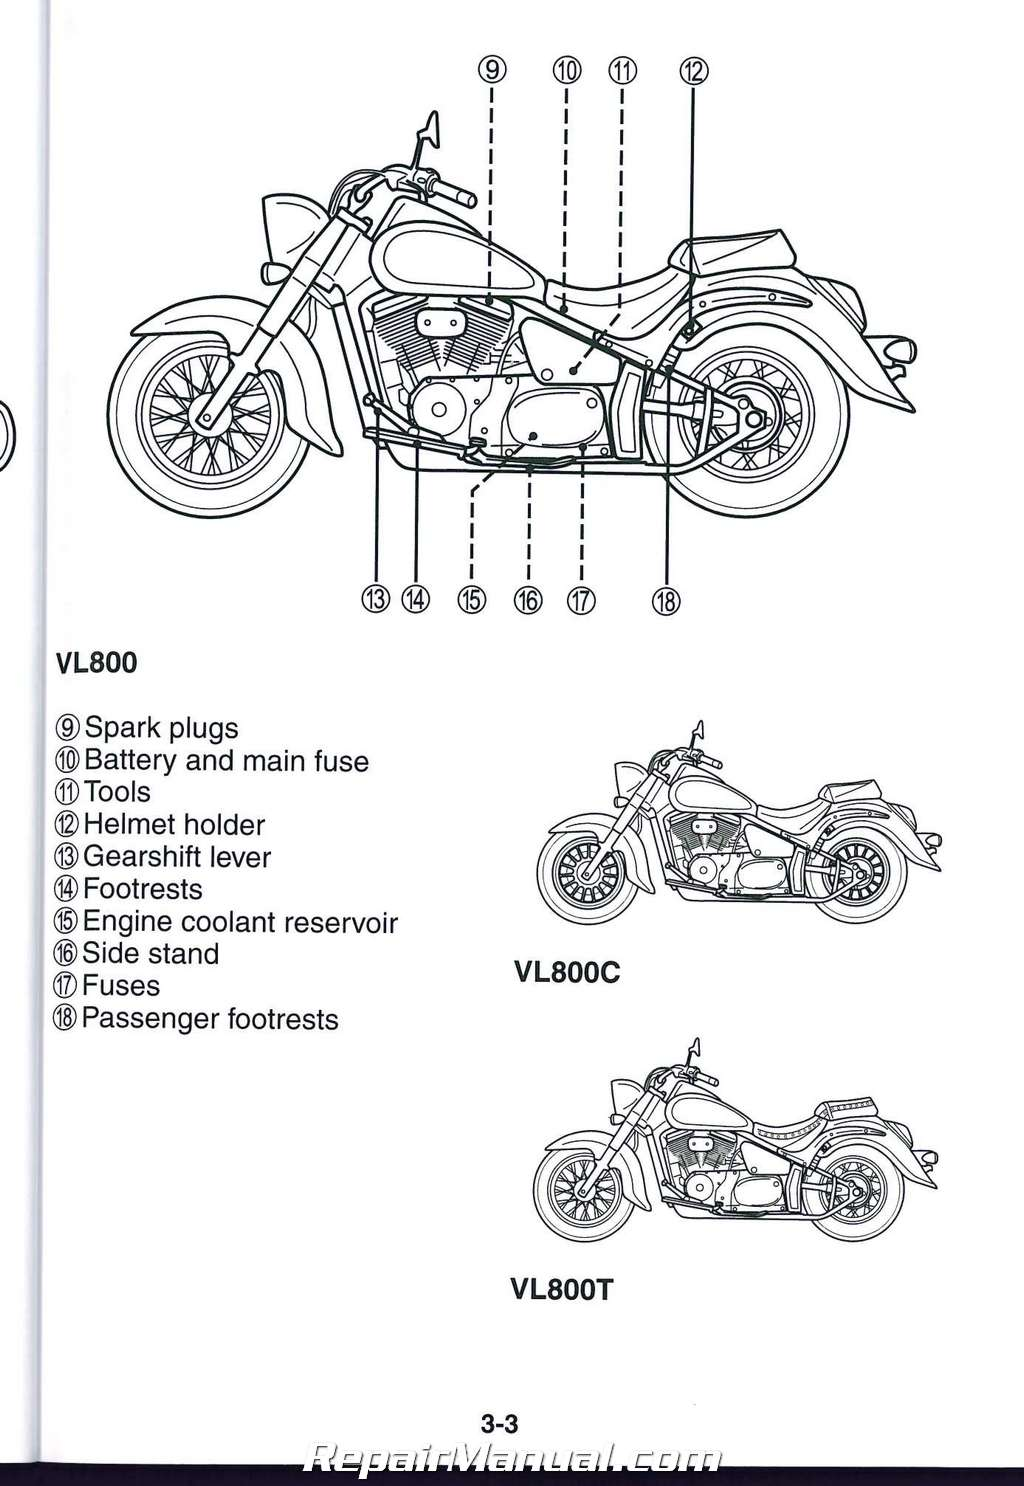 Suzuki C50t Wiring Diagrams Suzuki XL7 Electrical Diagram